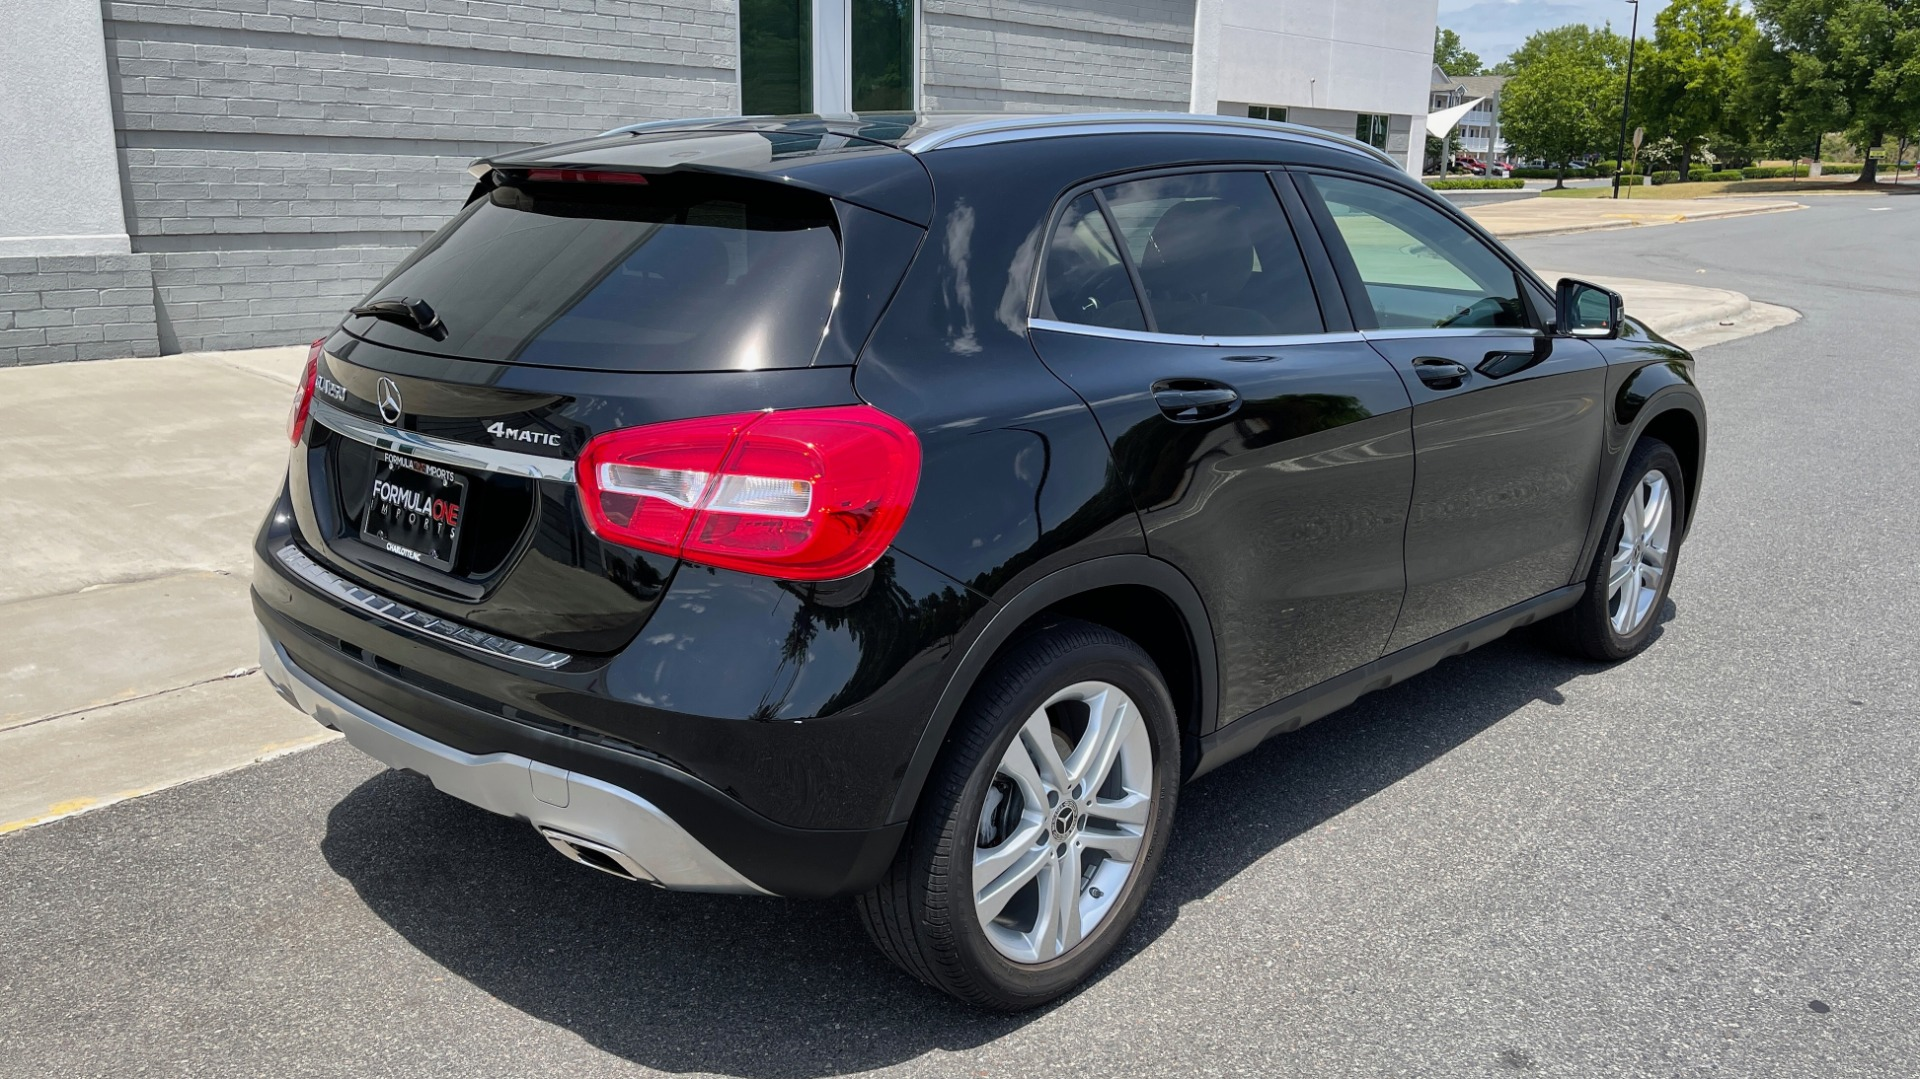 Used 2018 Mercedes-Benz GLA 250 4MATIC SUV / PANO-ROOF / HTD STS / BLIND SPOT ASST / APPLE for sale $31,995 at Formula Imports in Charlotte NC 28227 2